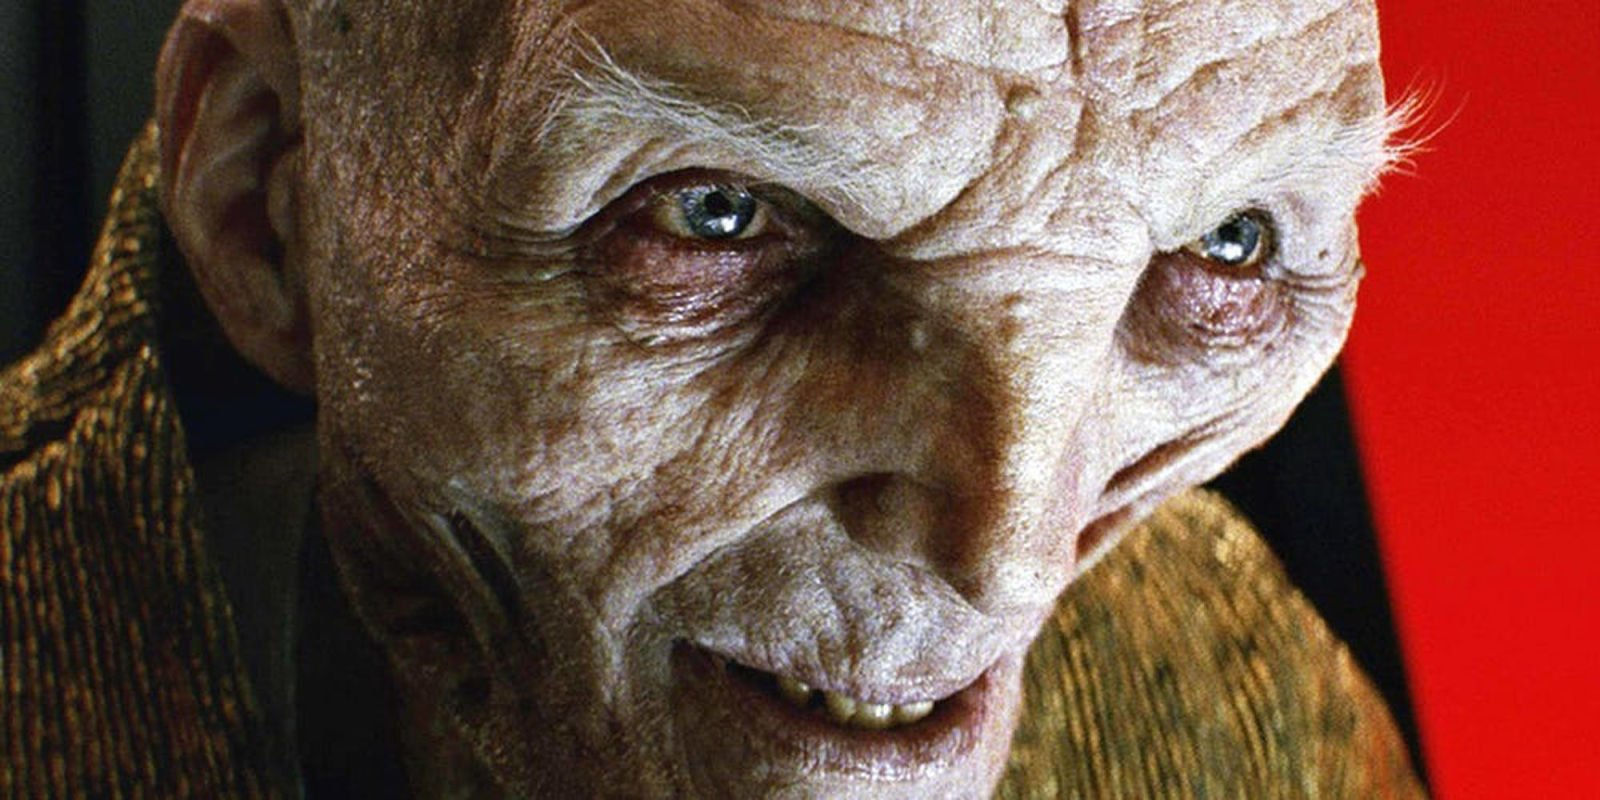 Why Star Wars The Last Jedi killed off Snoke and didn't reveal his backstory